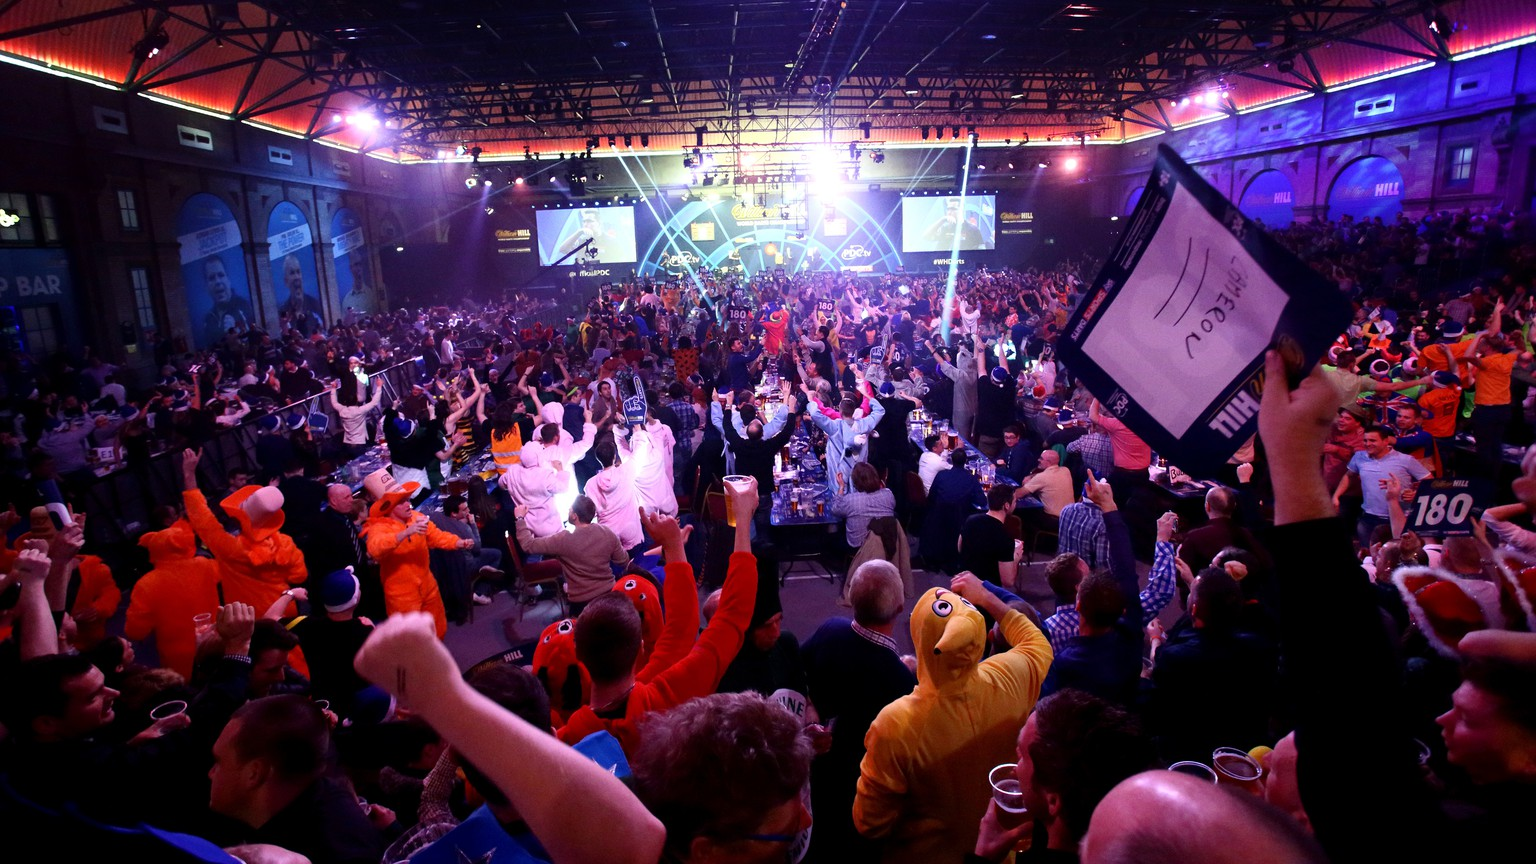 LONDON, ENGLAND - DECEMBER 21:  A detailed view of darts paraphernalia on day four of the 2015 William Hill PDC World Darts Championships  at Alexandra Palace on December 21, 2014 in London, England.  (Photo by Ben Hoskins/Getty Images)